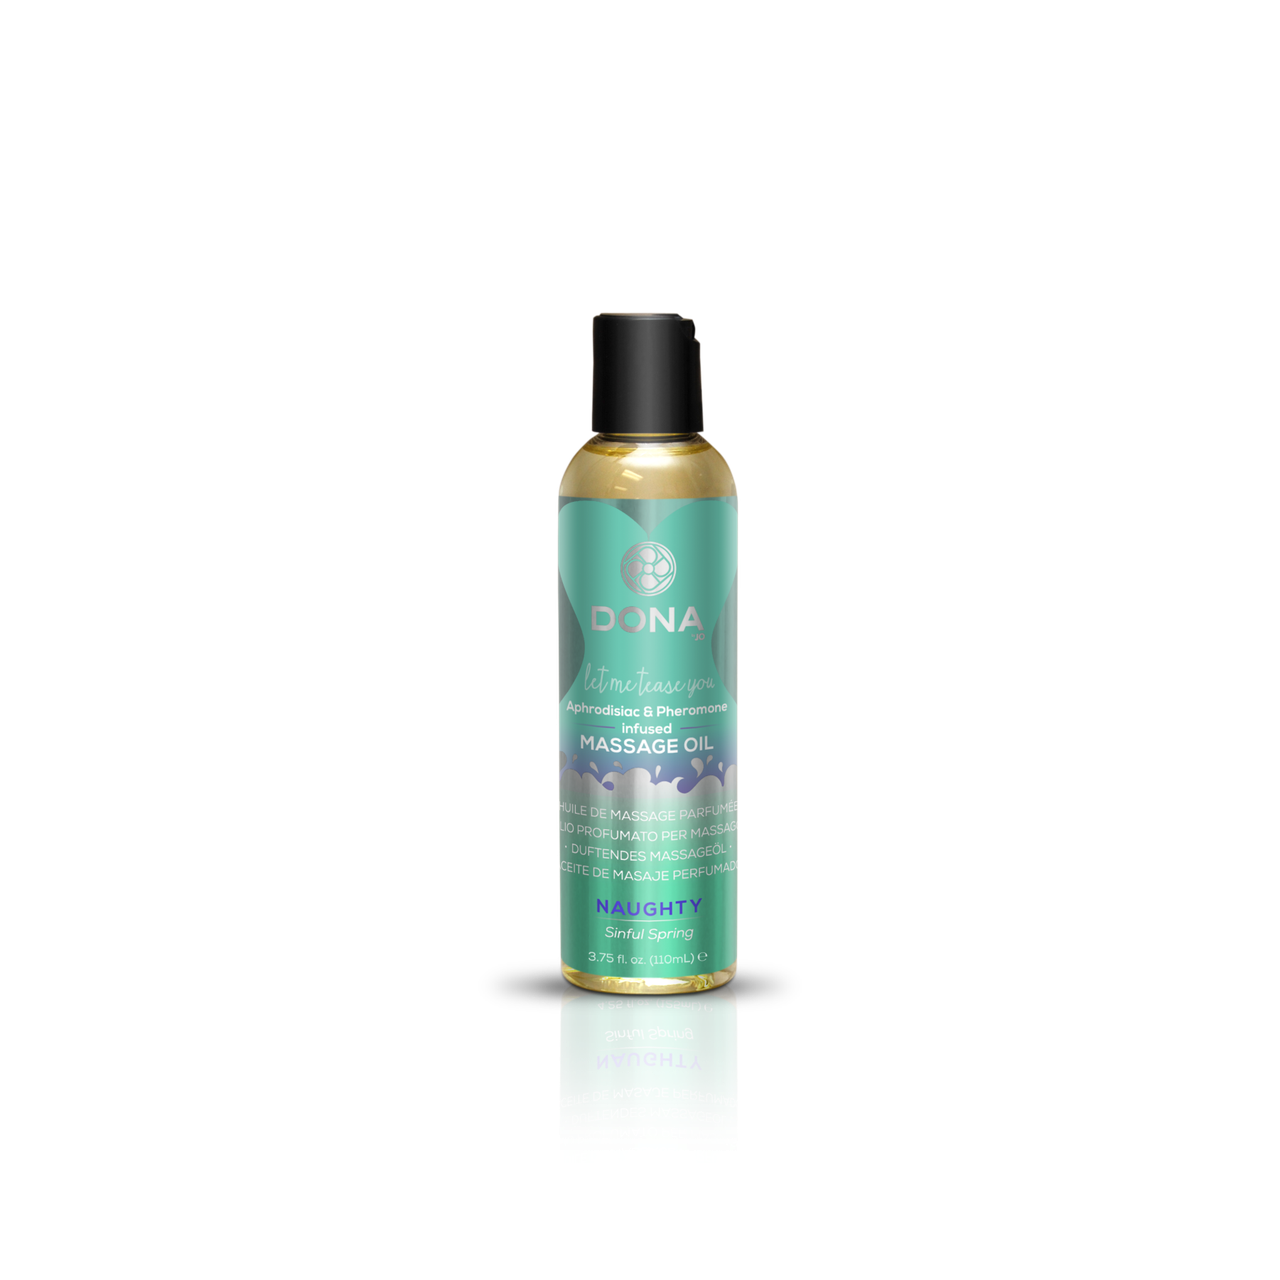 Массажное масло Dona Scented Massage Oil Naughty Aroma Sinful Spring, 110 мл